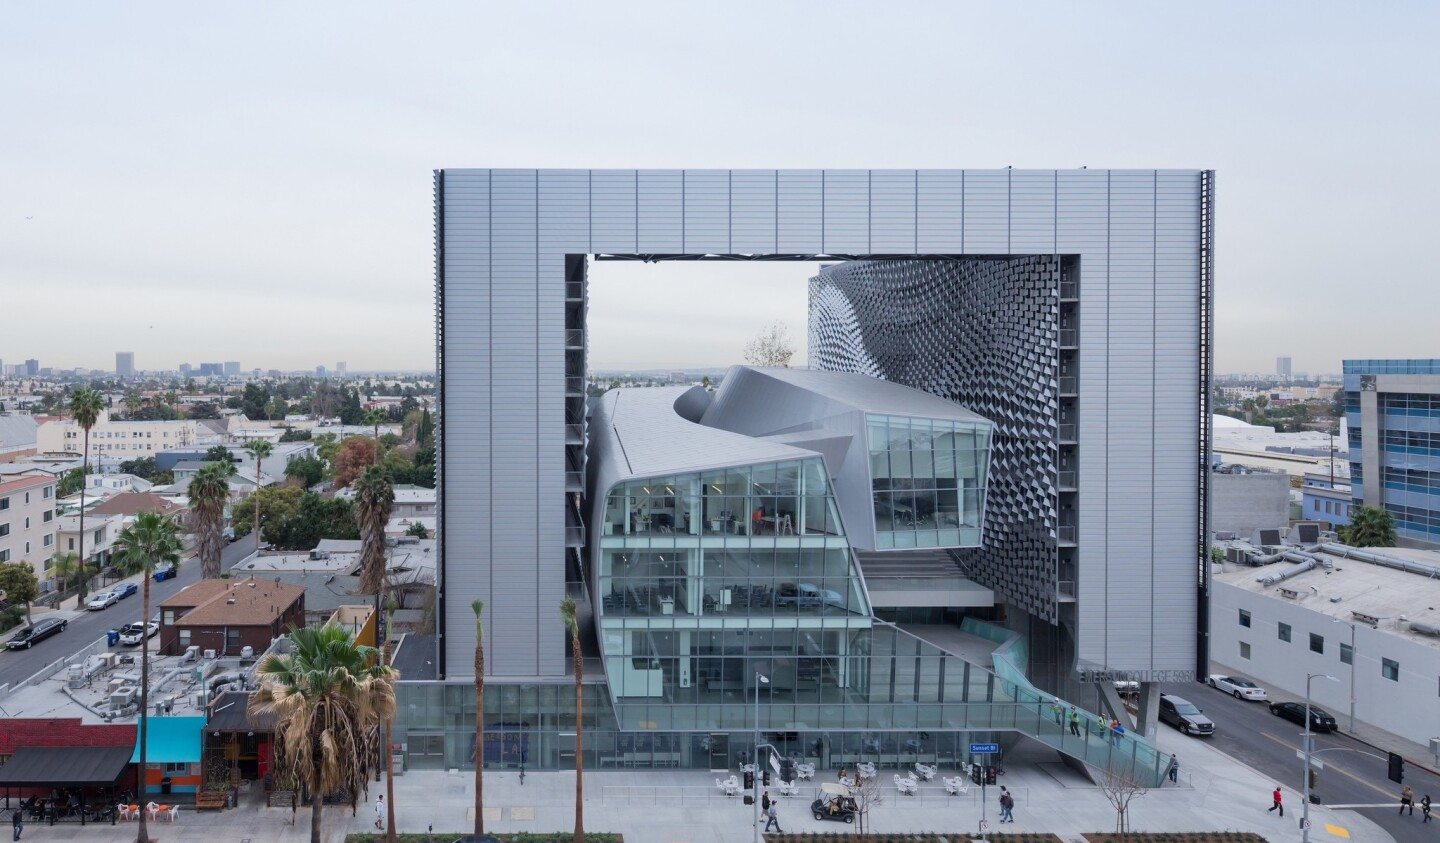 Wrapped in metal and glass, the Emerson College building designed by Thom Mayne and Morphosis ingeniously incorporates the look of a boxy Hollywood stage set.